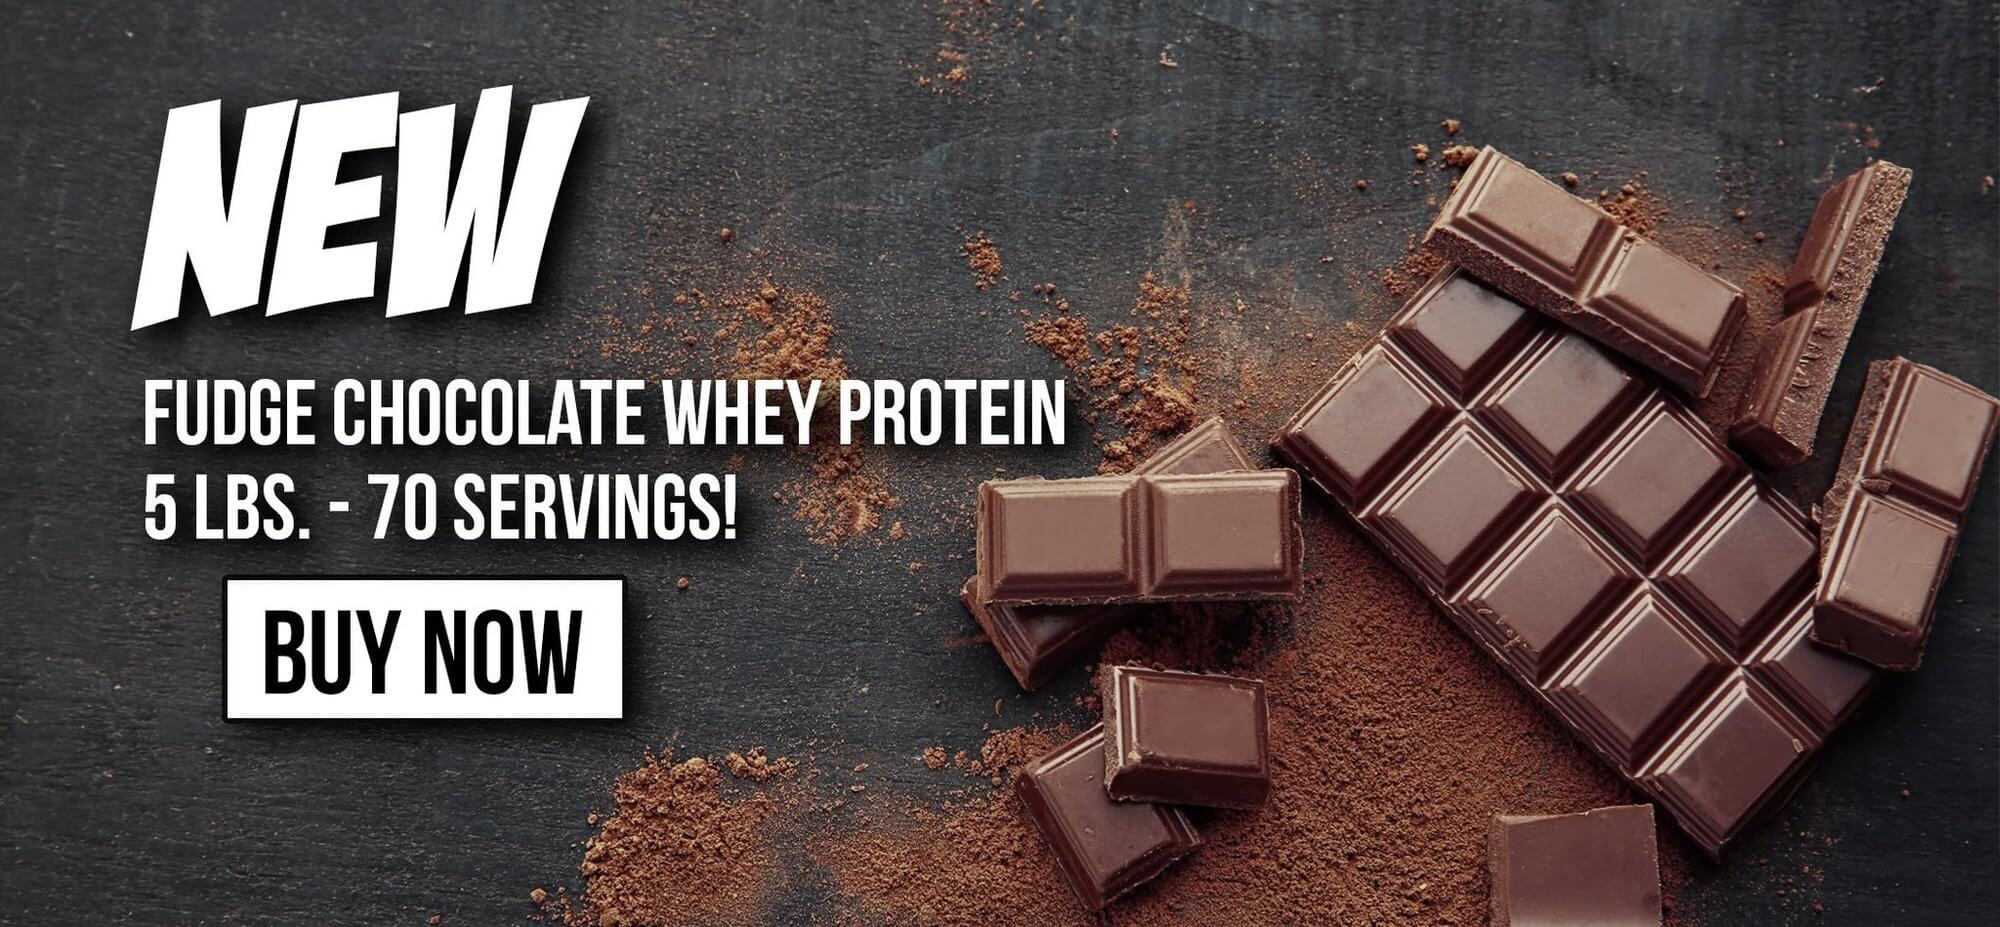 Whey Protein Fudge Chocolate